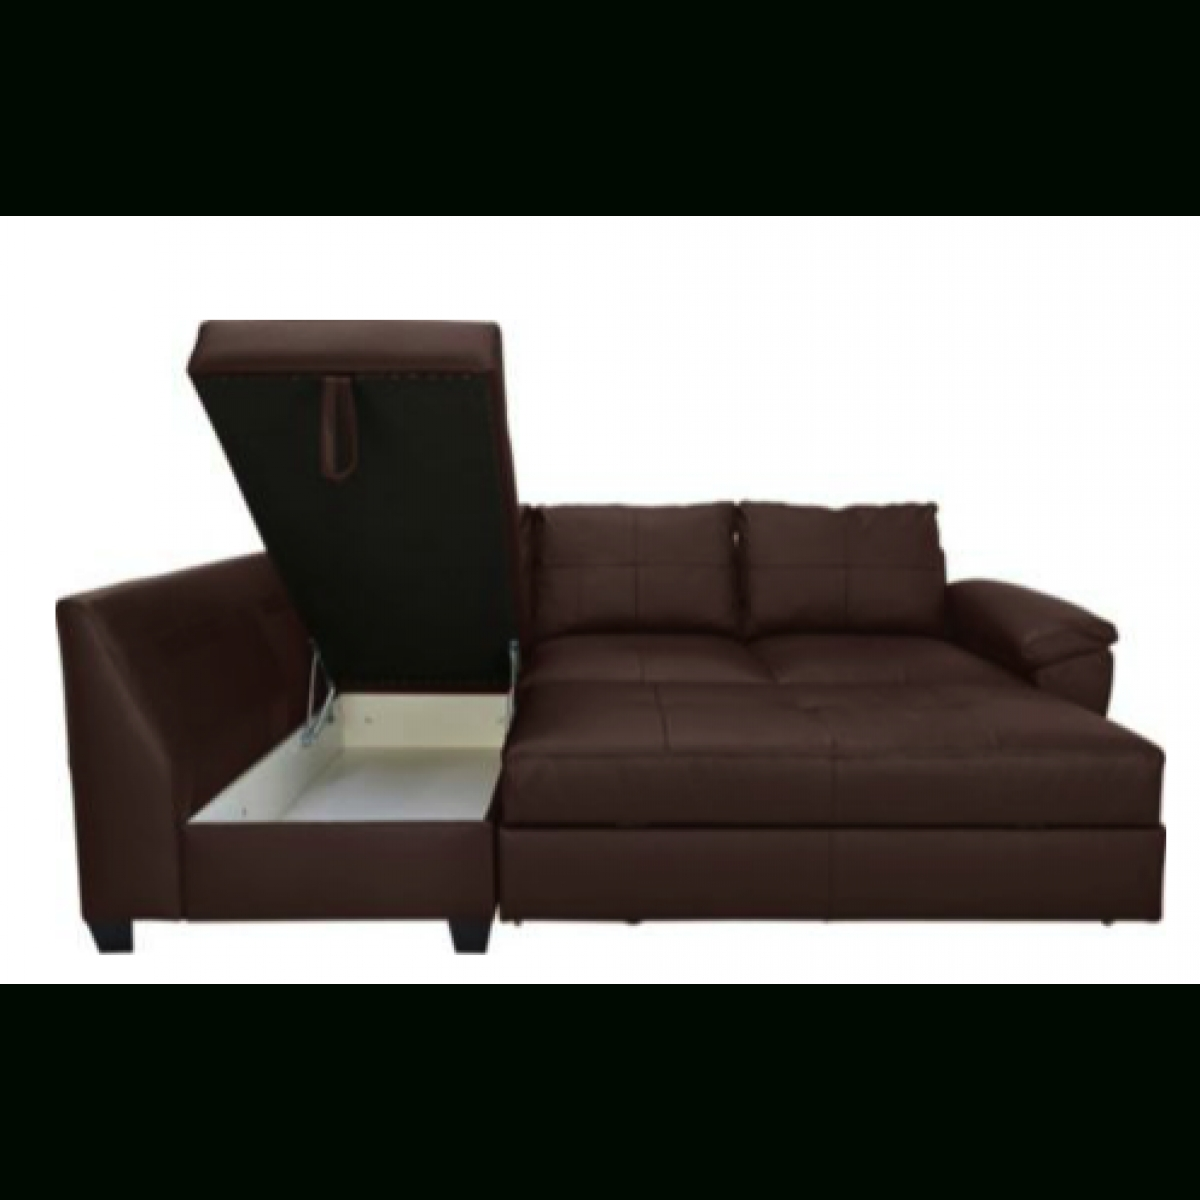 Fernando Leather Left Hand Sofa Bed Corner Group – Chocolate With Regard To Leather Sofa Beds With Storage (Image 9 of 20)